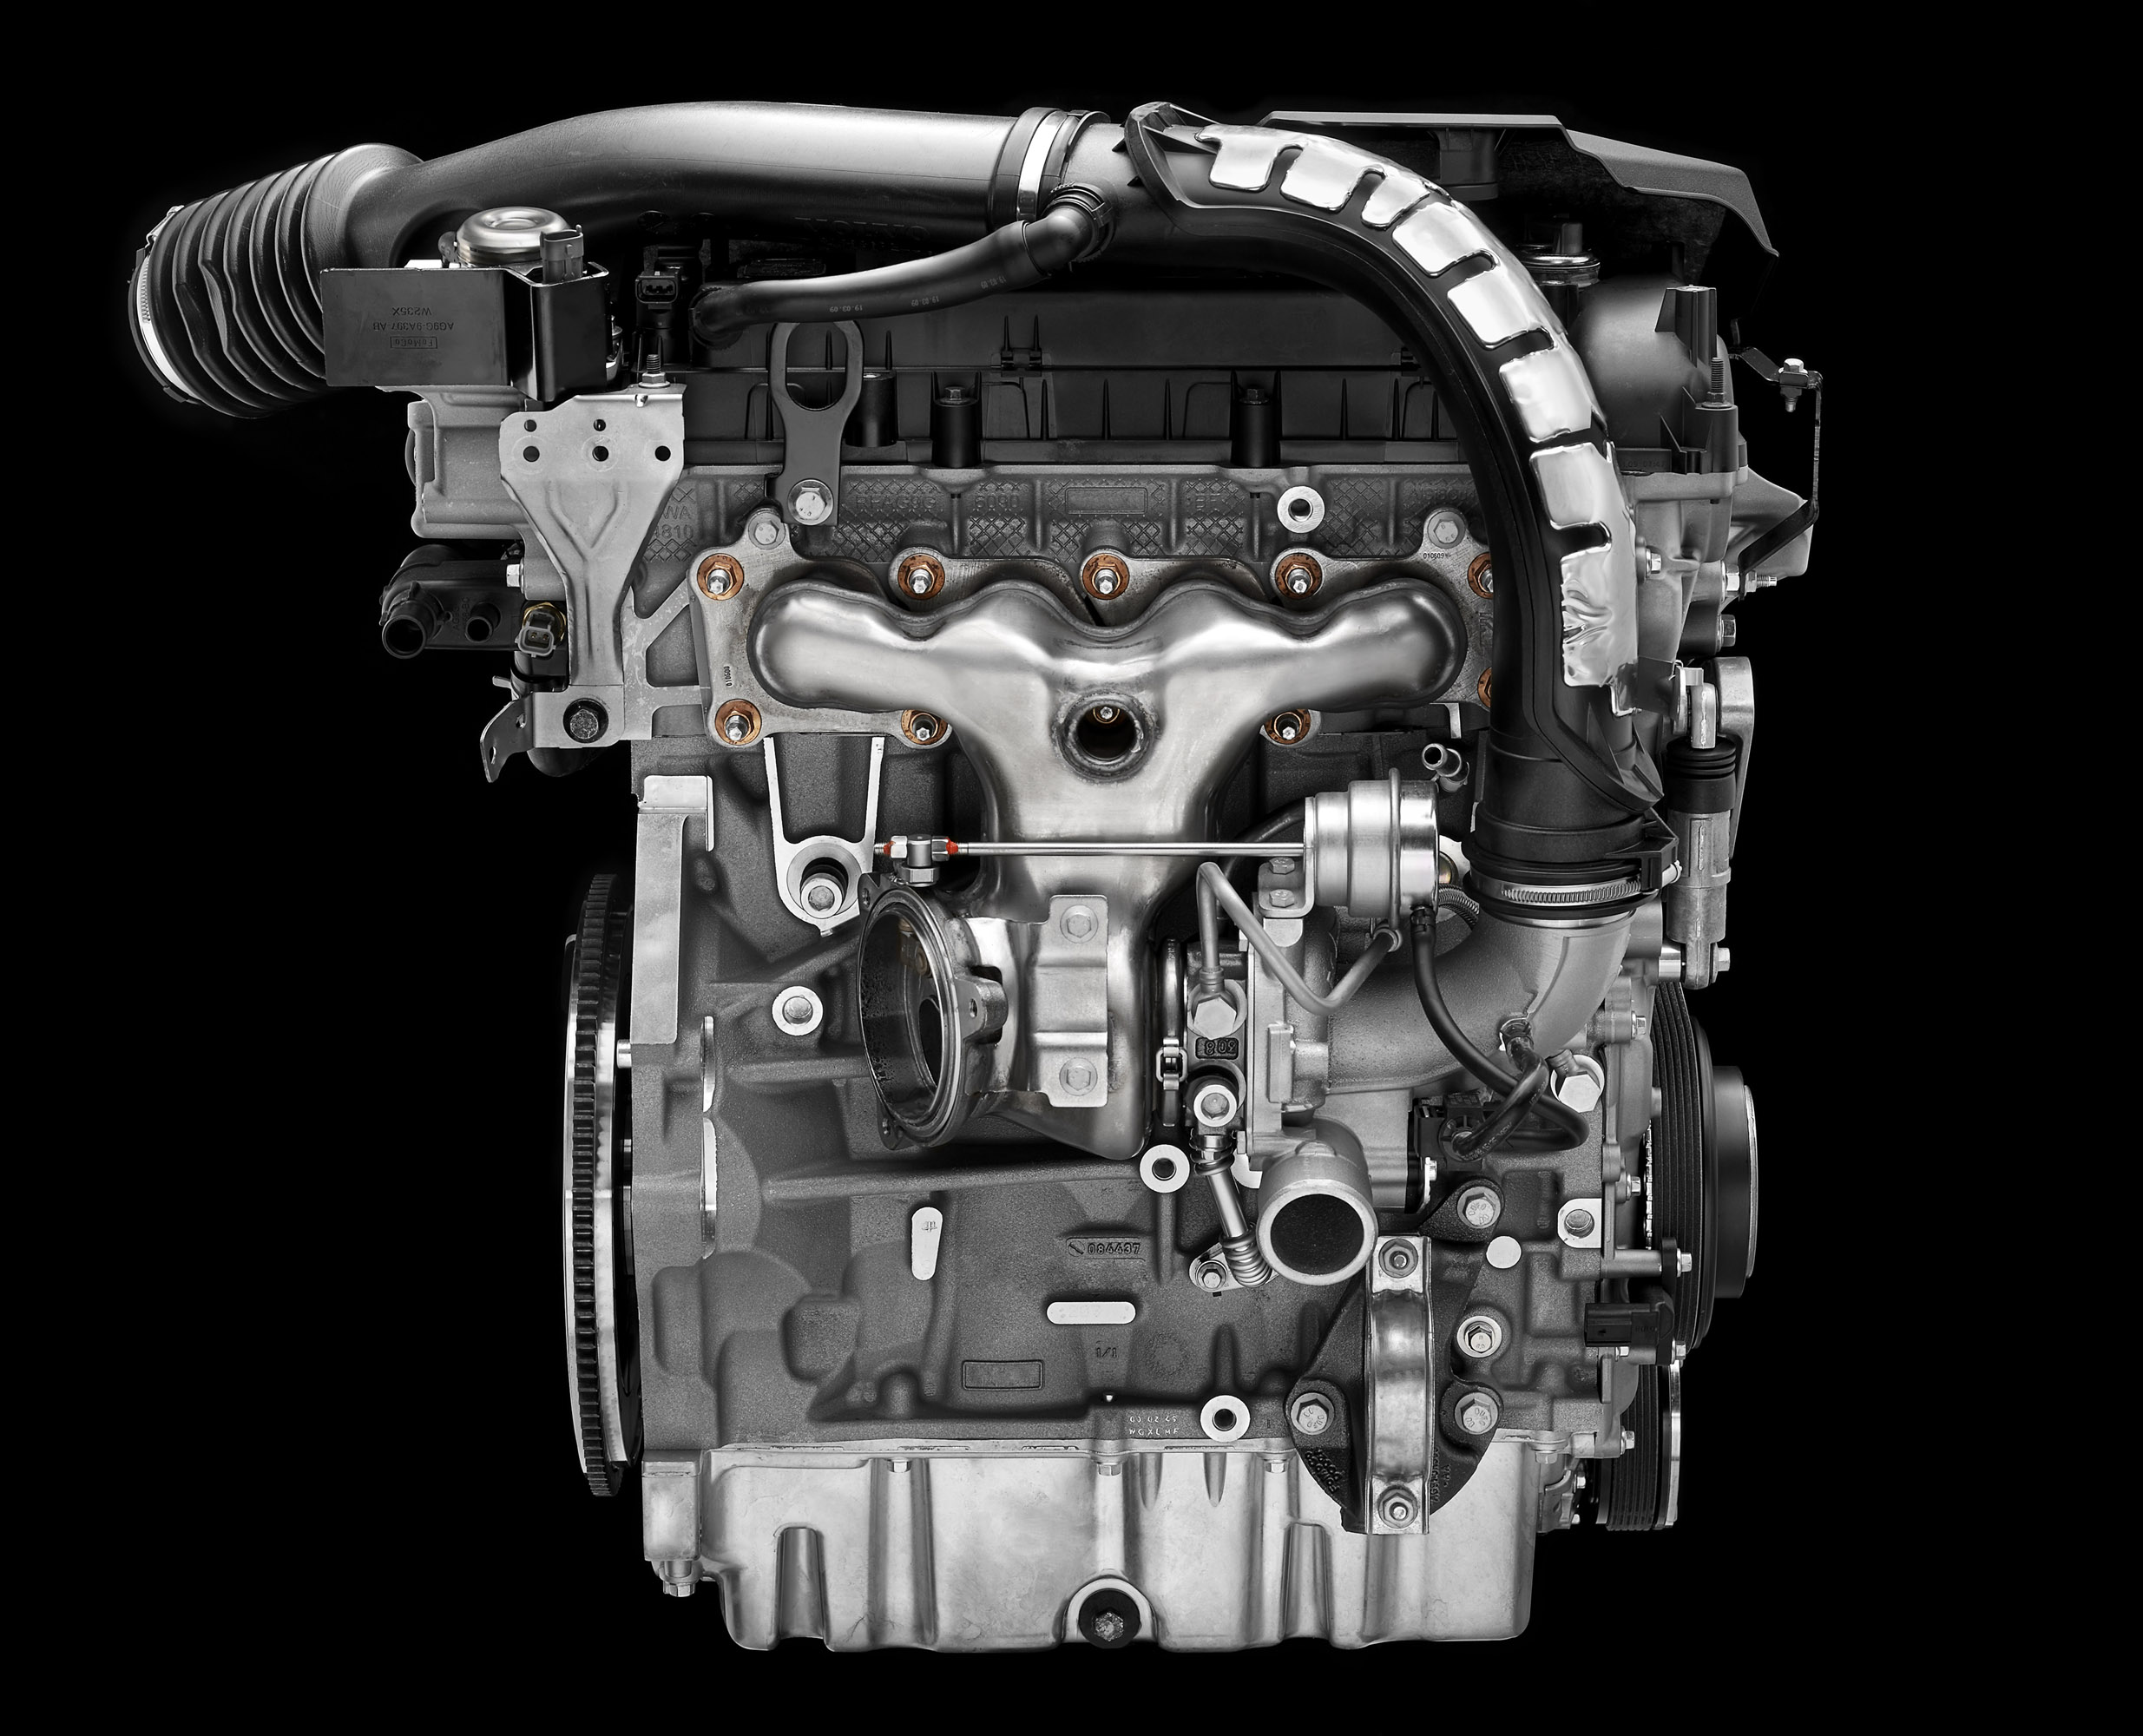 volvo announced new efficient 2 litre gtdi engine with unique turbo system. Black Bedroom Furniture Sets. Home Design Ideas